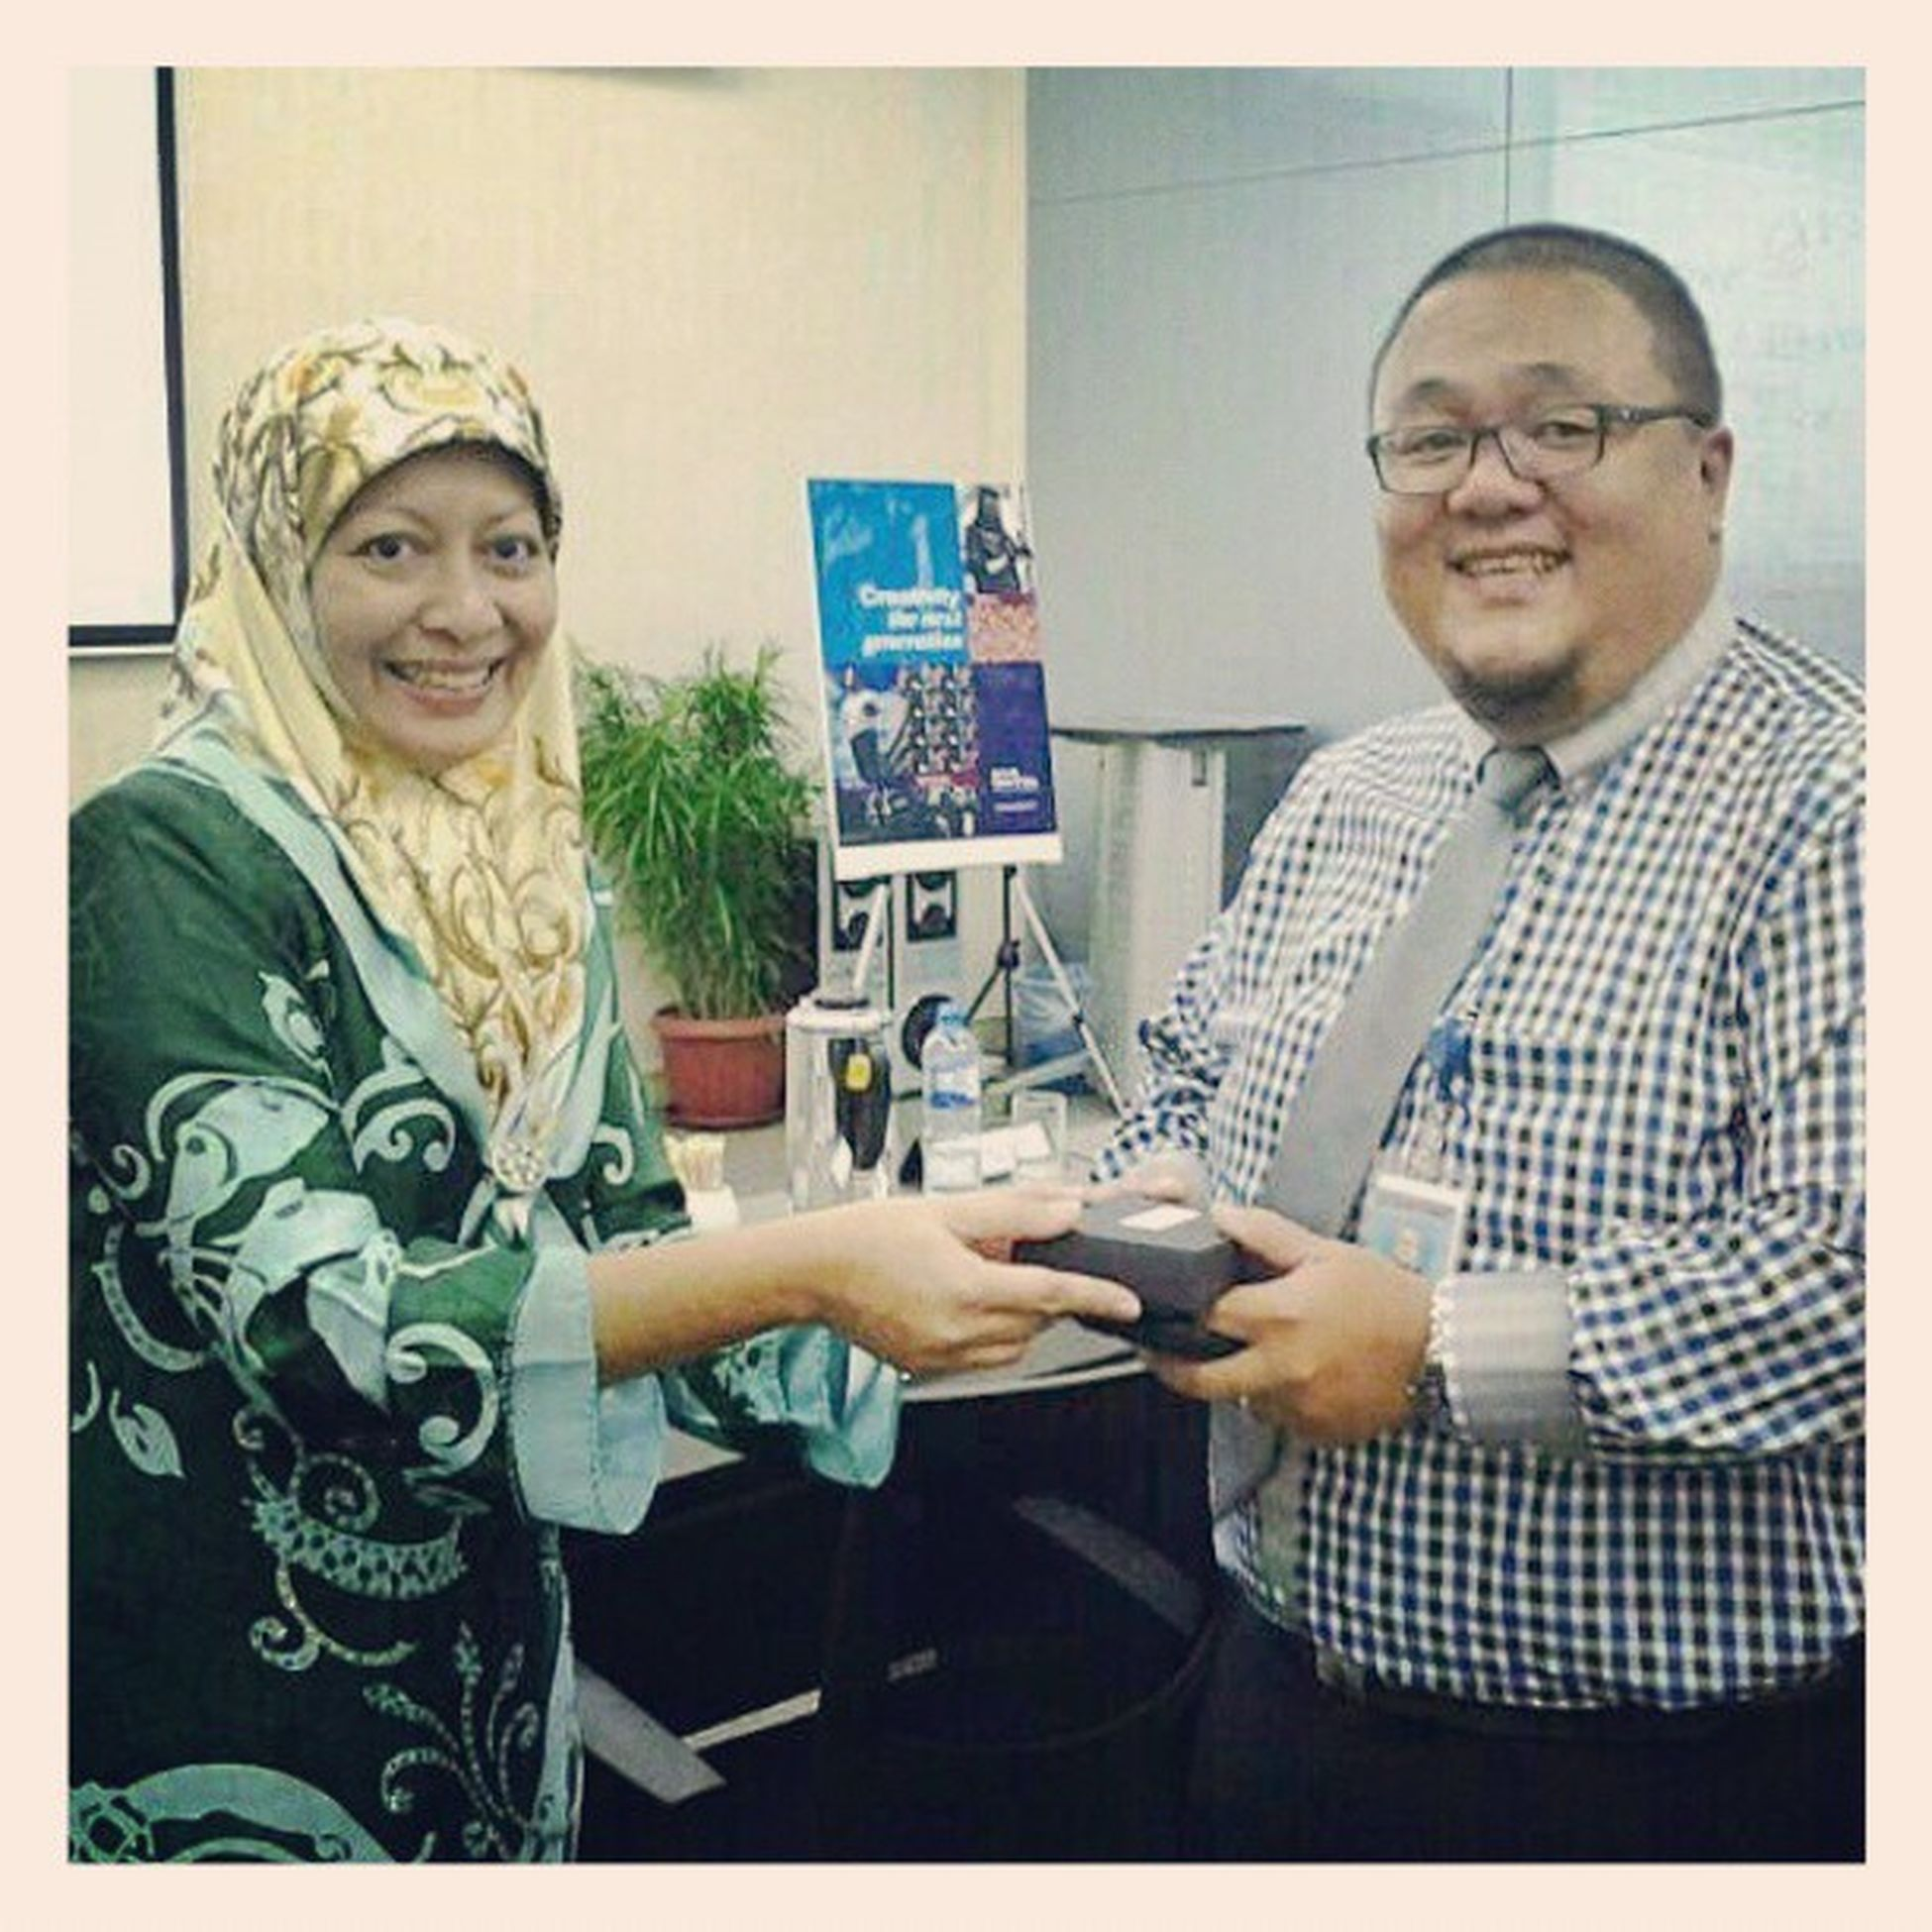 Received a lovely memento from Dyg Sharinah from the Patent Registry Office for judging the 30 second infomercial competition on Intellectual Property Rights earlier today. Some powerful entries! Brunei InstaBruDroid Andrography IPR